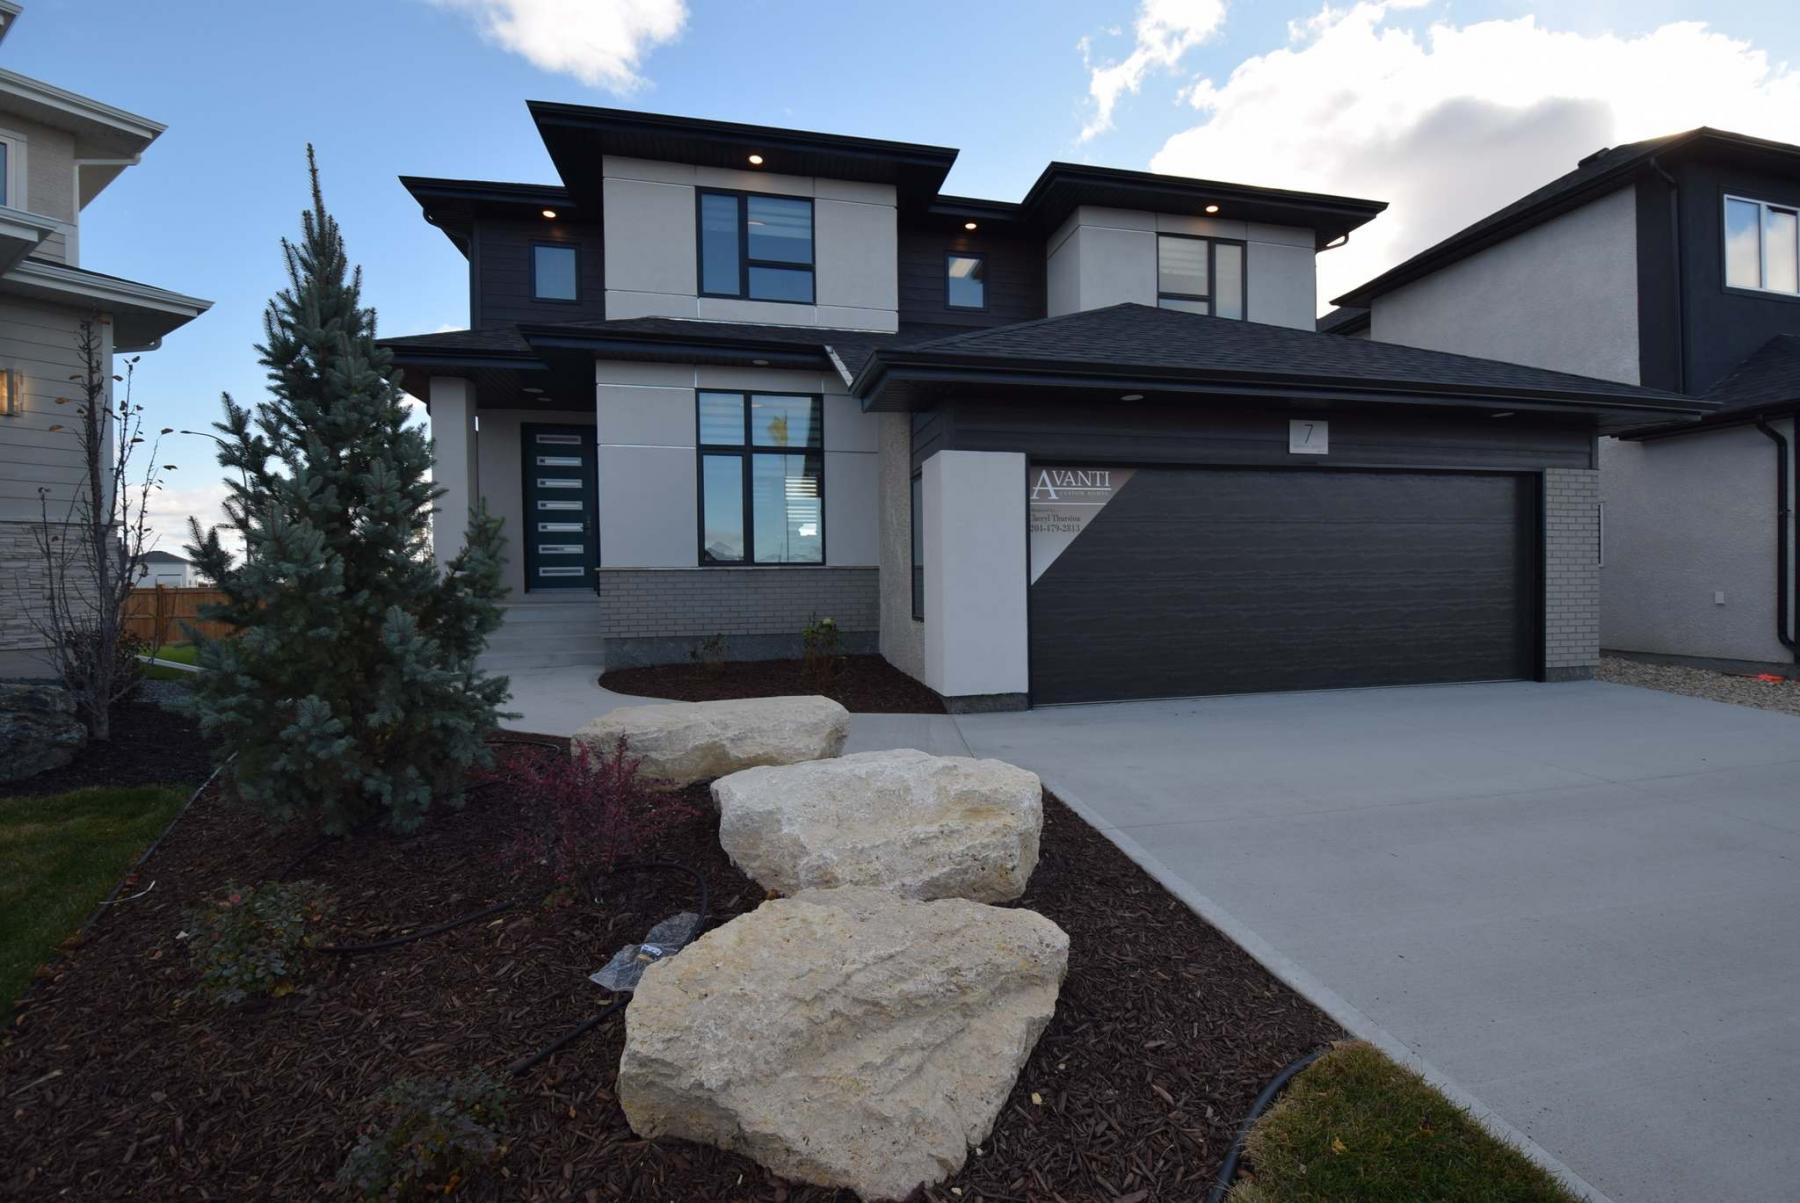 <p>Photos by Todd Lewys / Winnipeg Free Press</p><p>The two-storey, 2,312-sq.-ft. show home offers large families the function, flexibility and flair they need to enjoy life on a day-in, day-out basis.</p></p>